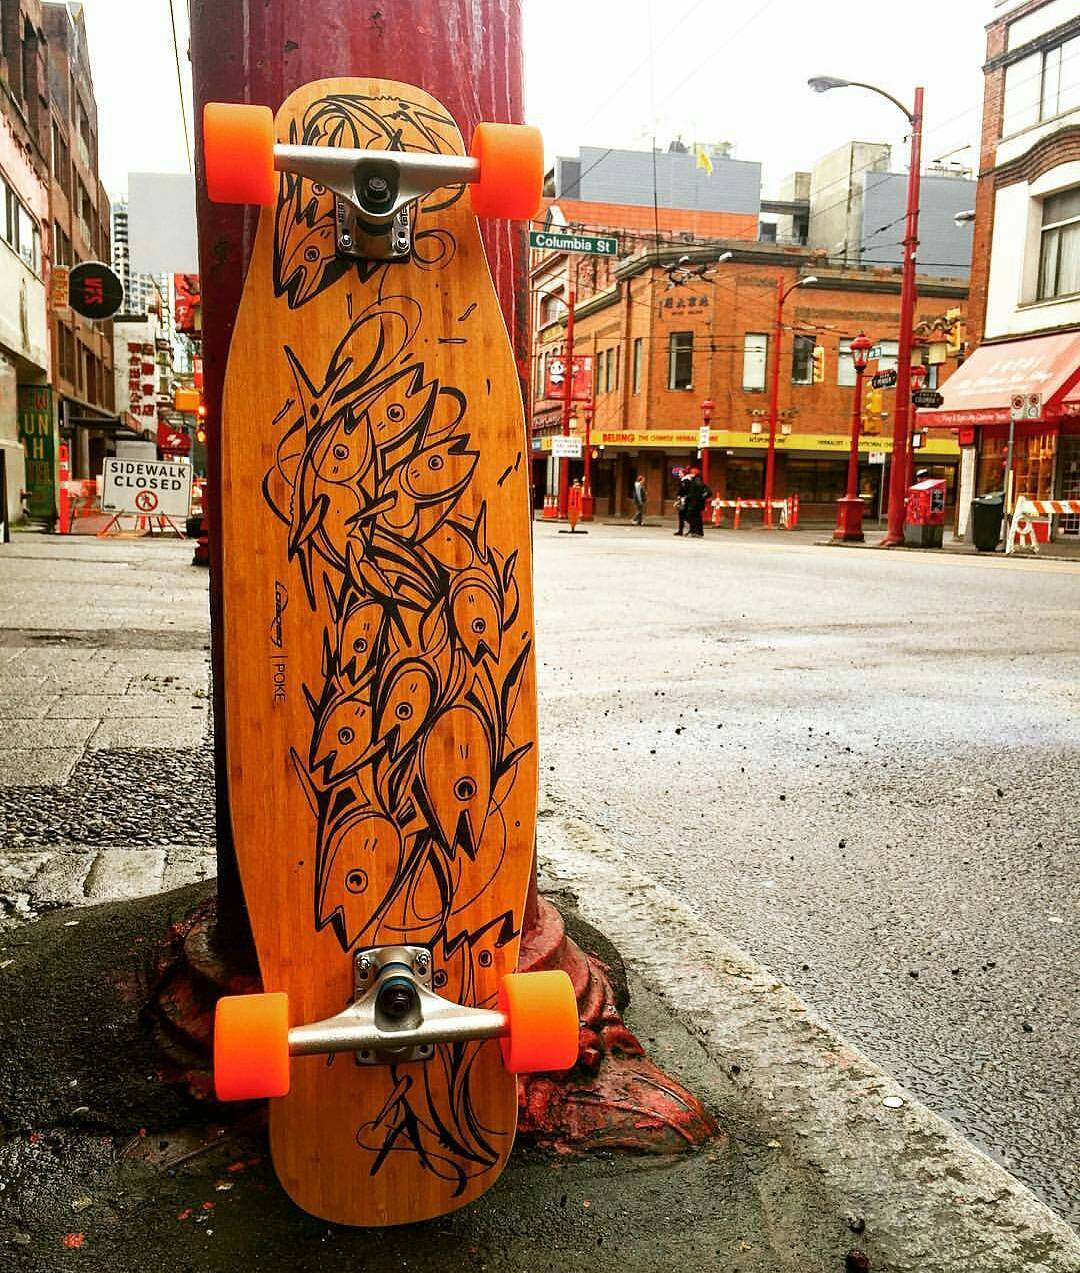 The awesome dudes over at Vancouver's @flatspotshop know how to put together a tasty looking Poke for their customers!  Go give those rad guys a follow if you live in Van!  #Repost #LoadedBoards #FlatSpotLongboards #Orangatang #PolarBears